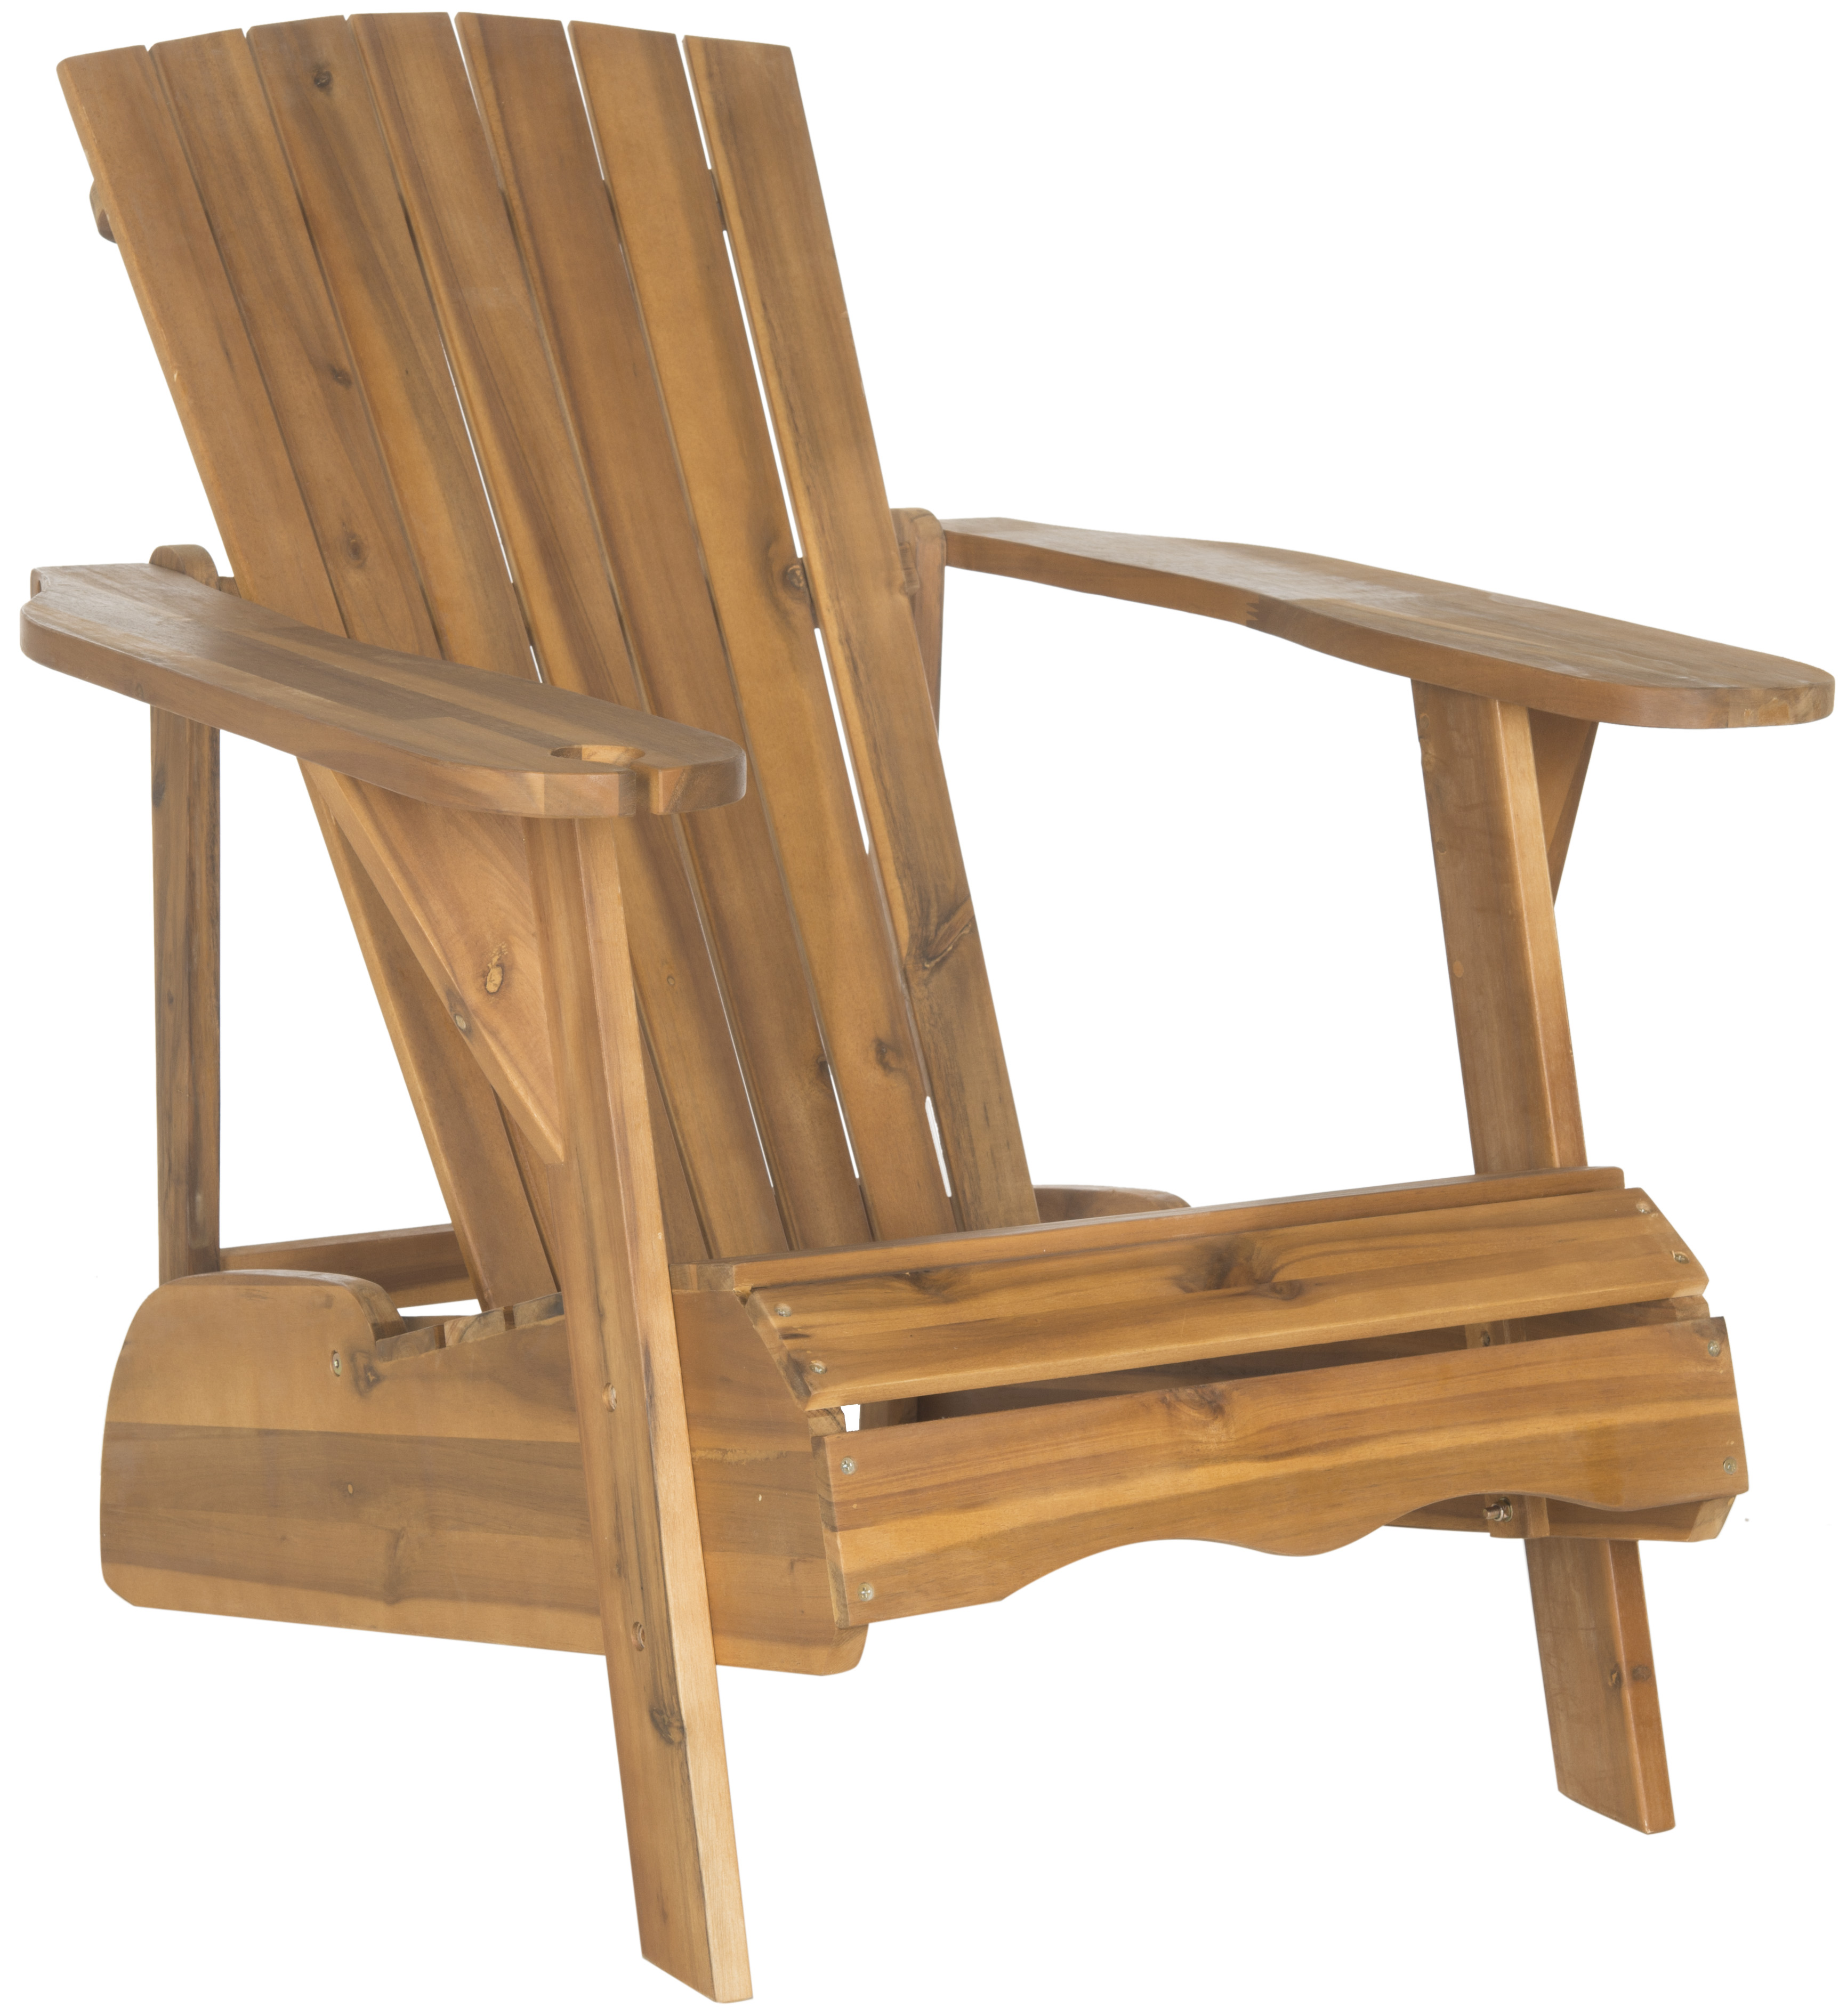 Safavieh Vista Outdoor Contemporary Adirondack Chair